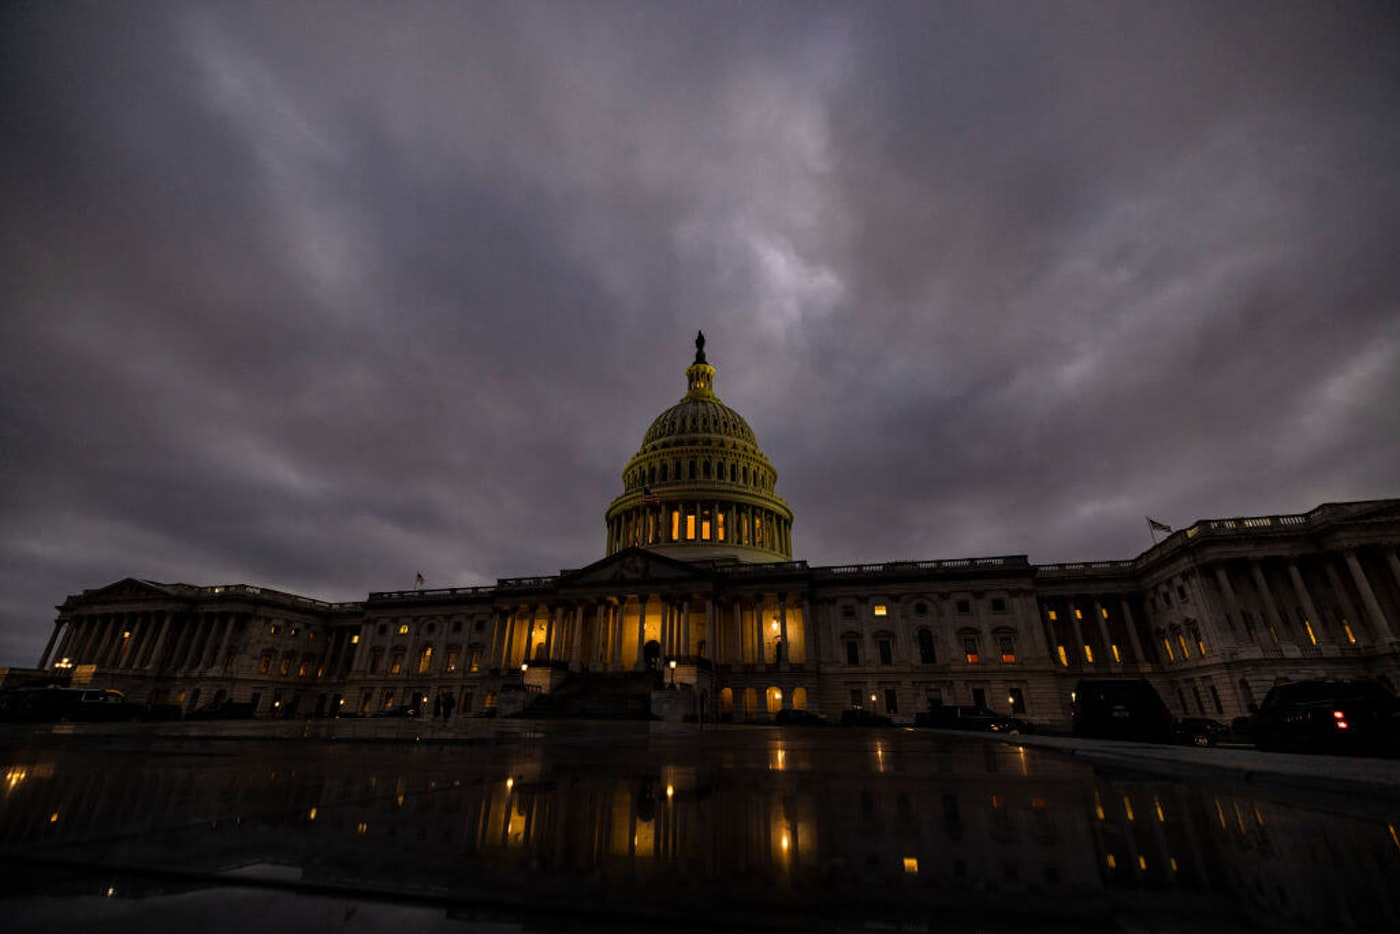 WASHINGTON, DC - DECEMBER 20: Dusk falls over the US Capitol building on December 20, 2020 in Washington, DC. Republicans and Democrats in the Senate finally came to an agreement on the coronavirus relief bill and a vote is expected later today or tomorrow. (Photo by Samuel Corum/Getty Images)